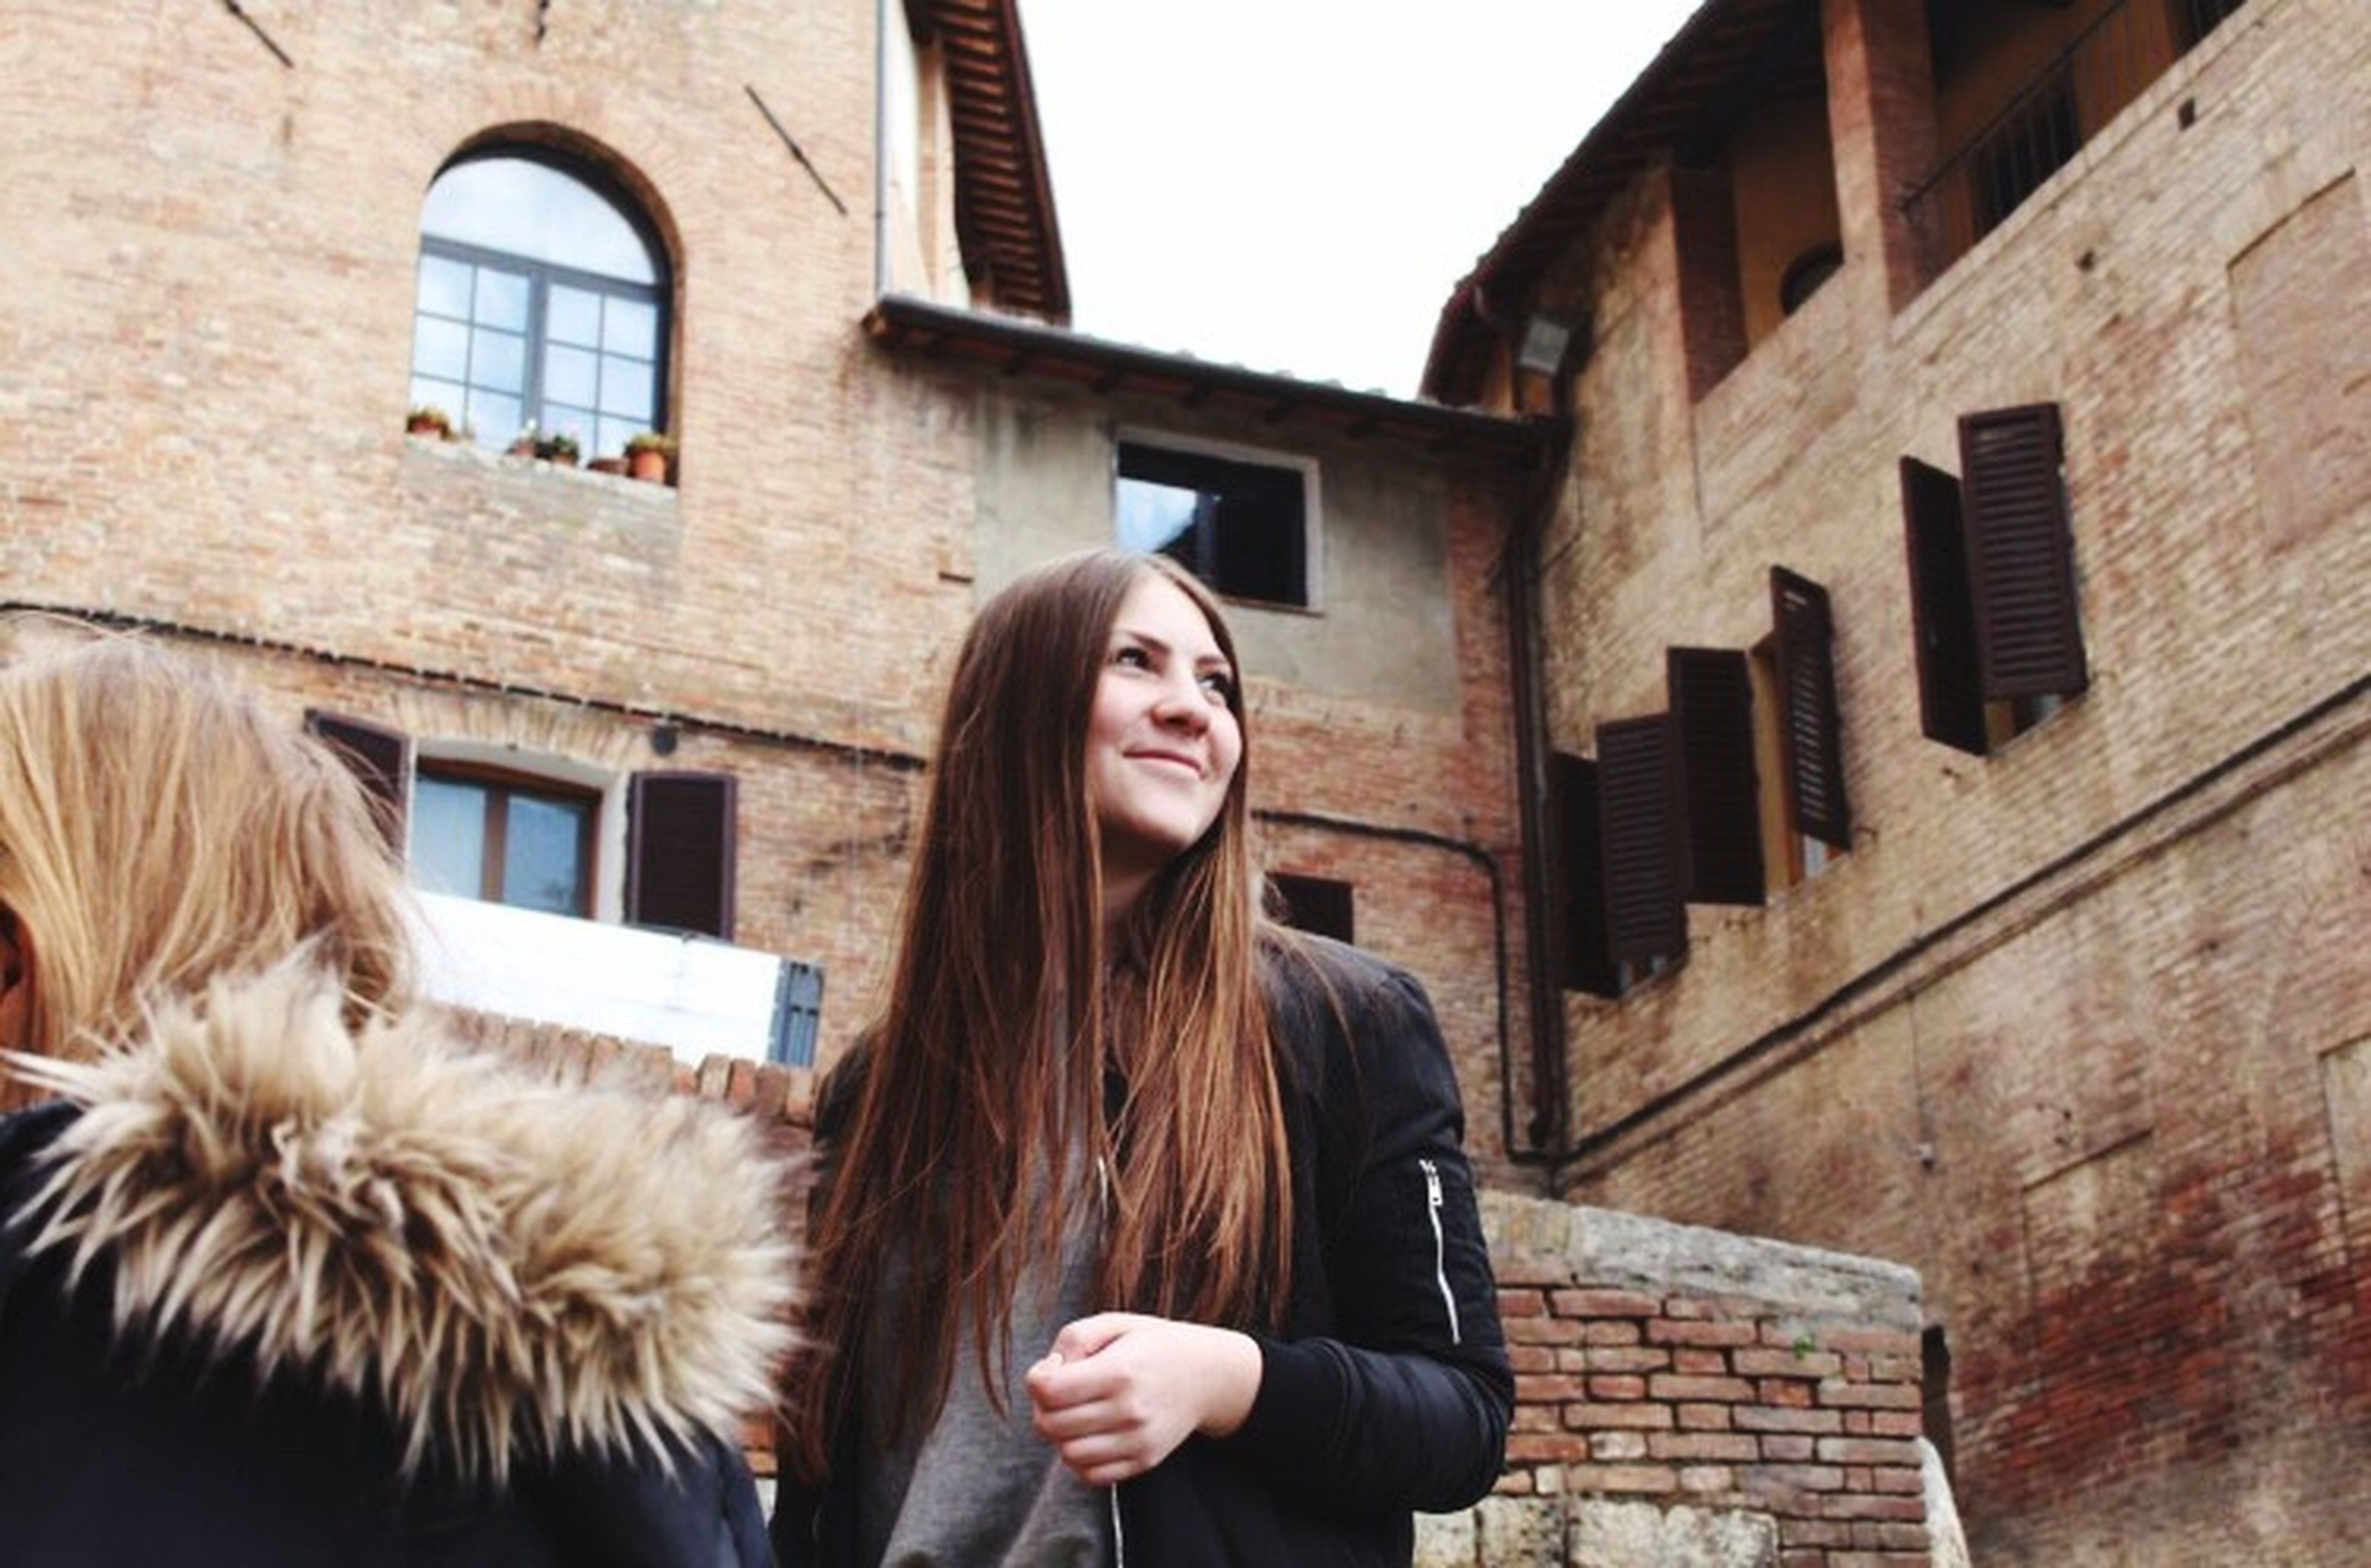 young adult, young women, architecture, built structure, person, long hair, lifestyles, portrait, front view, leisure activity, casual clothing, building, brick wall, day, black hair, outdoors, beauty